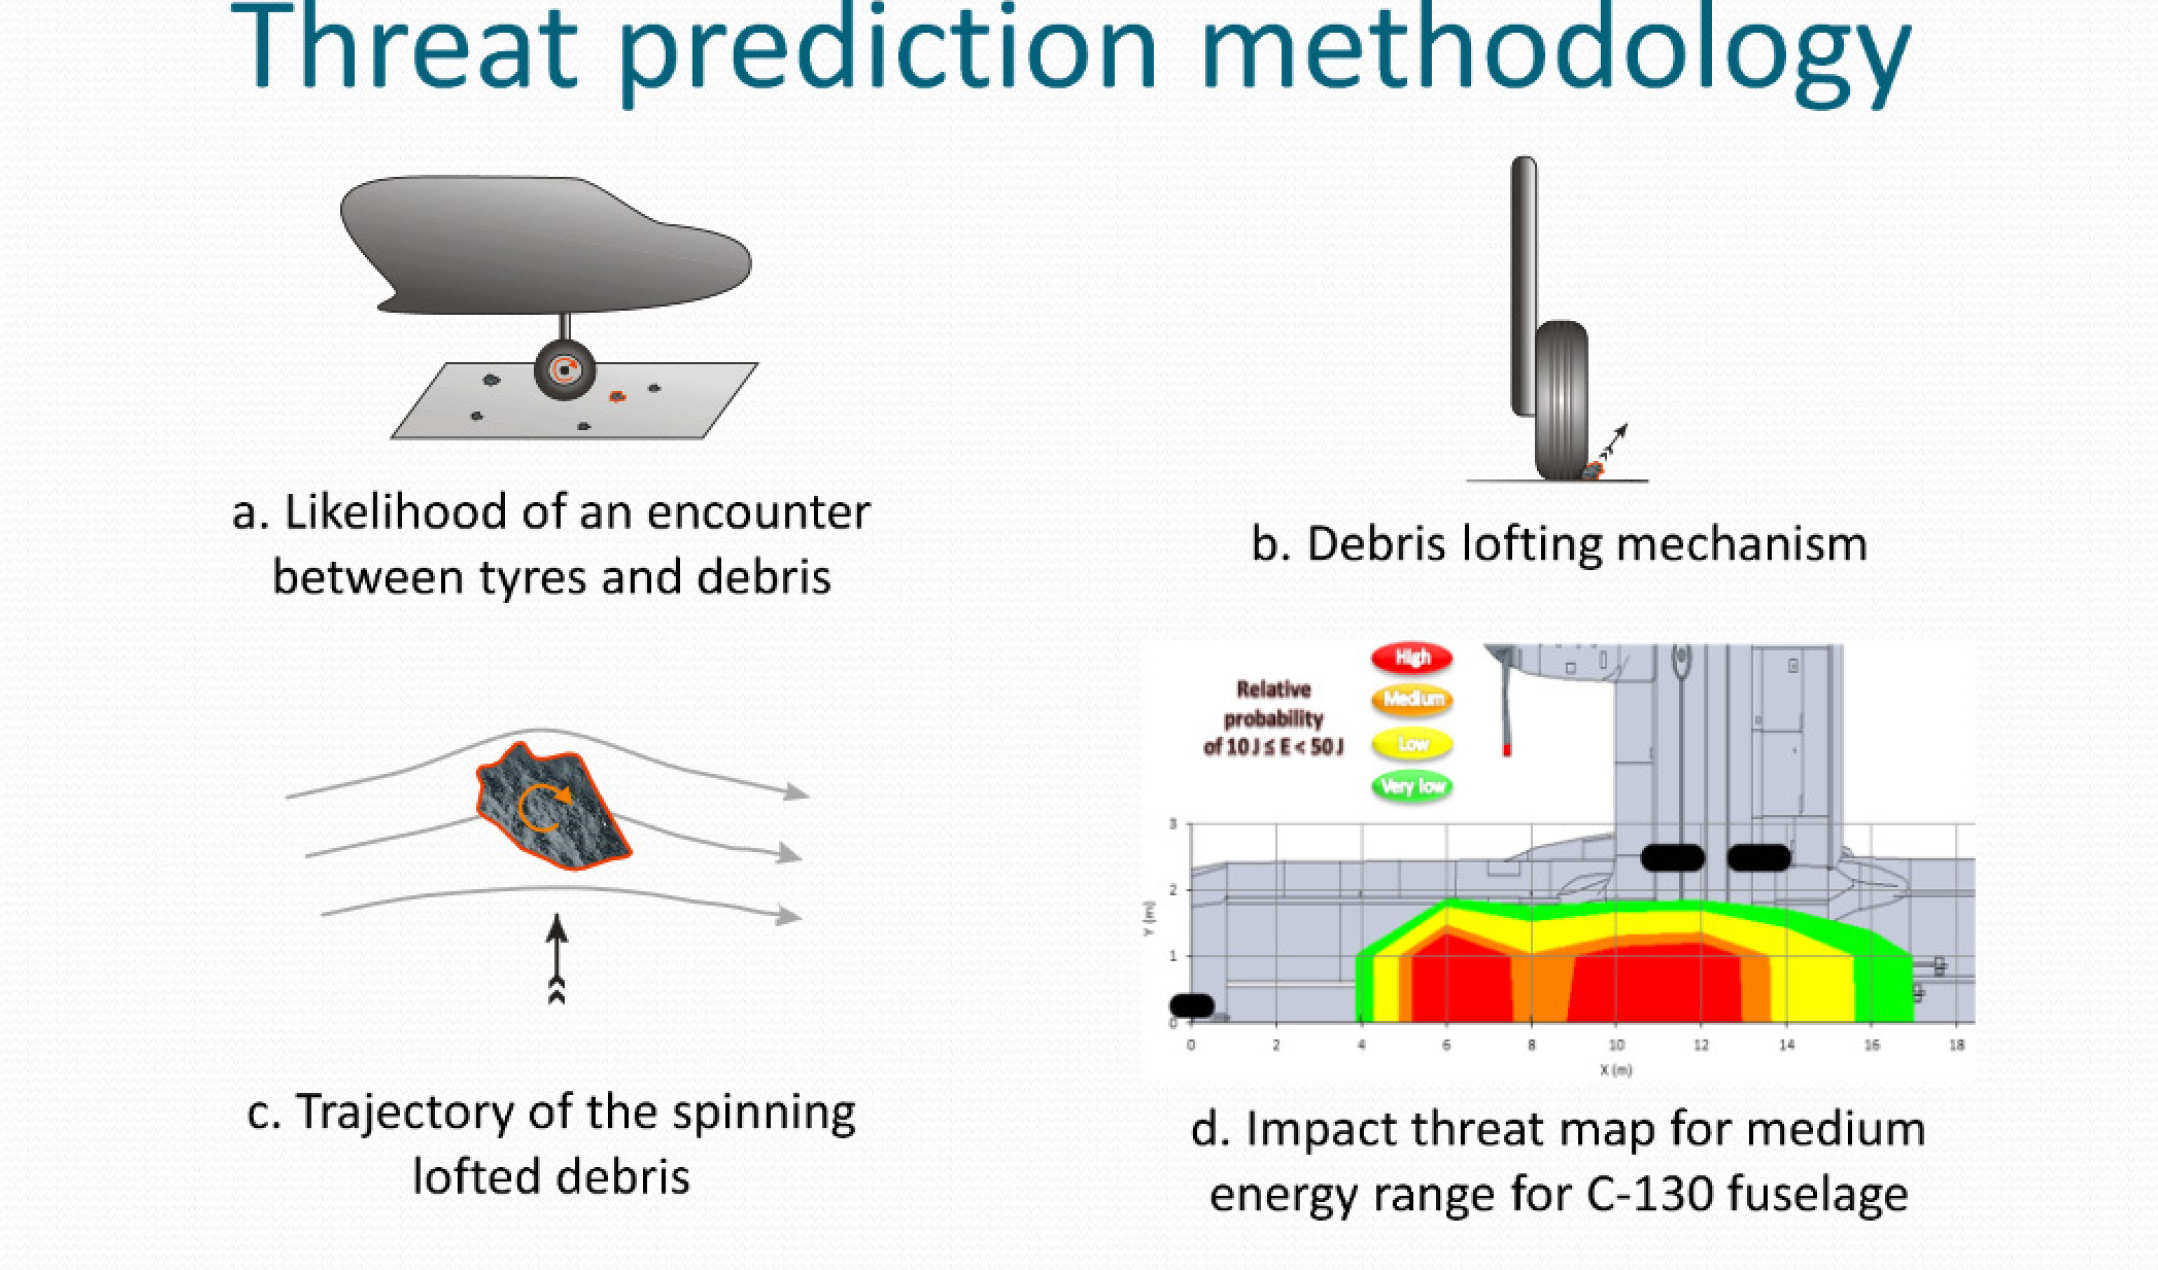 Threat prediction methodology